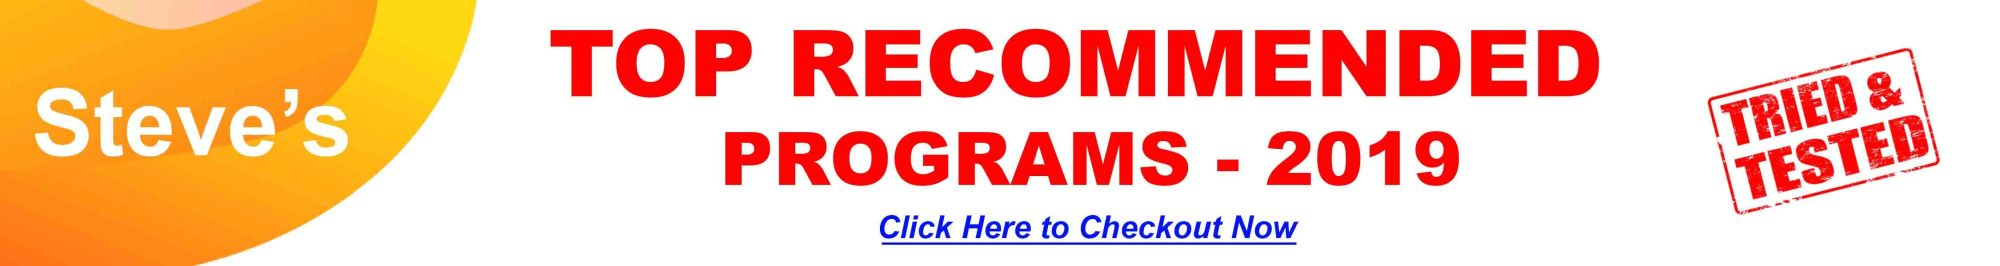 Recommended-Programs